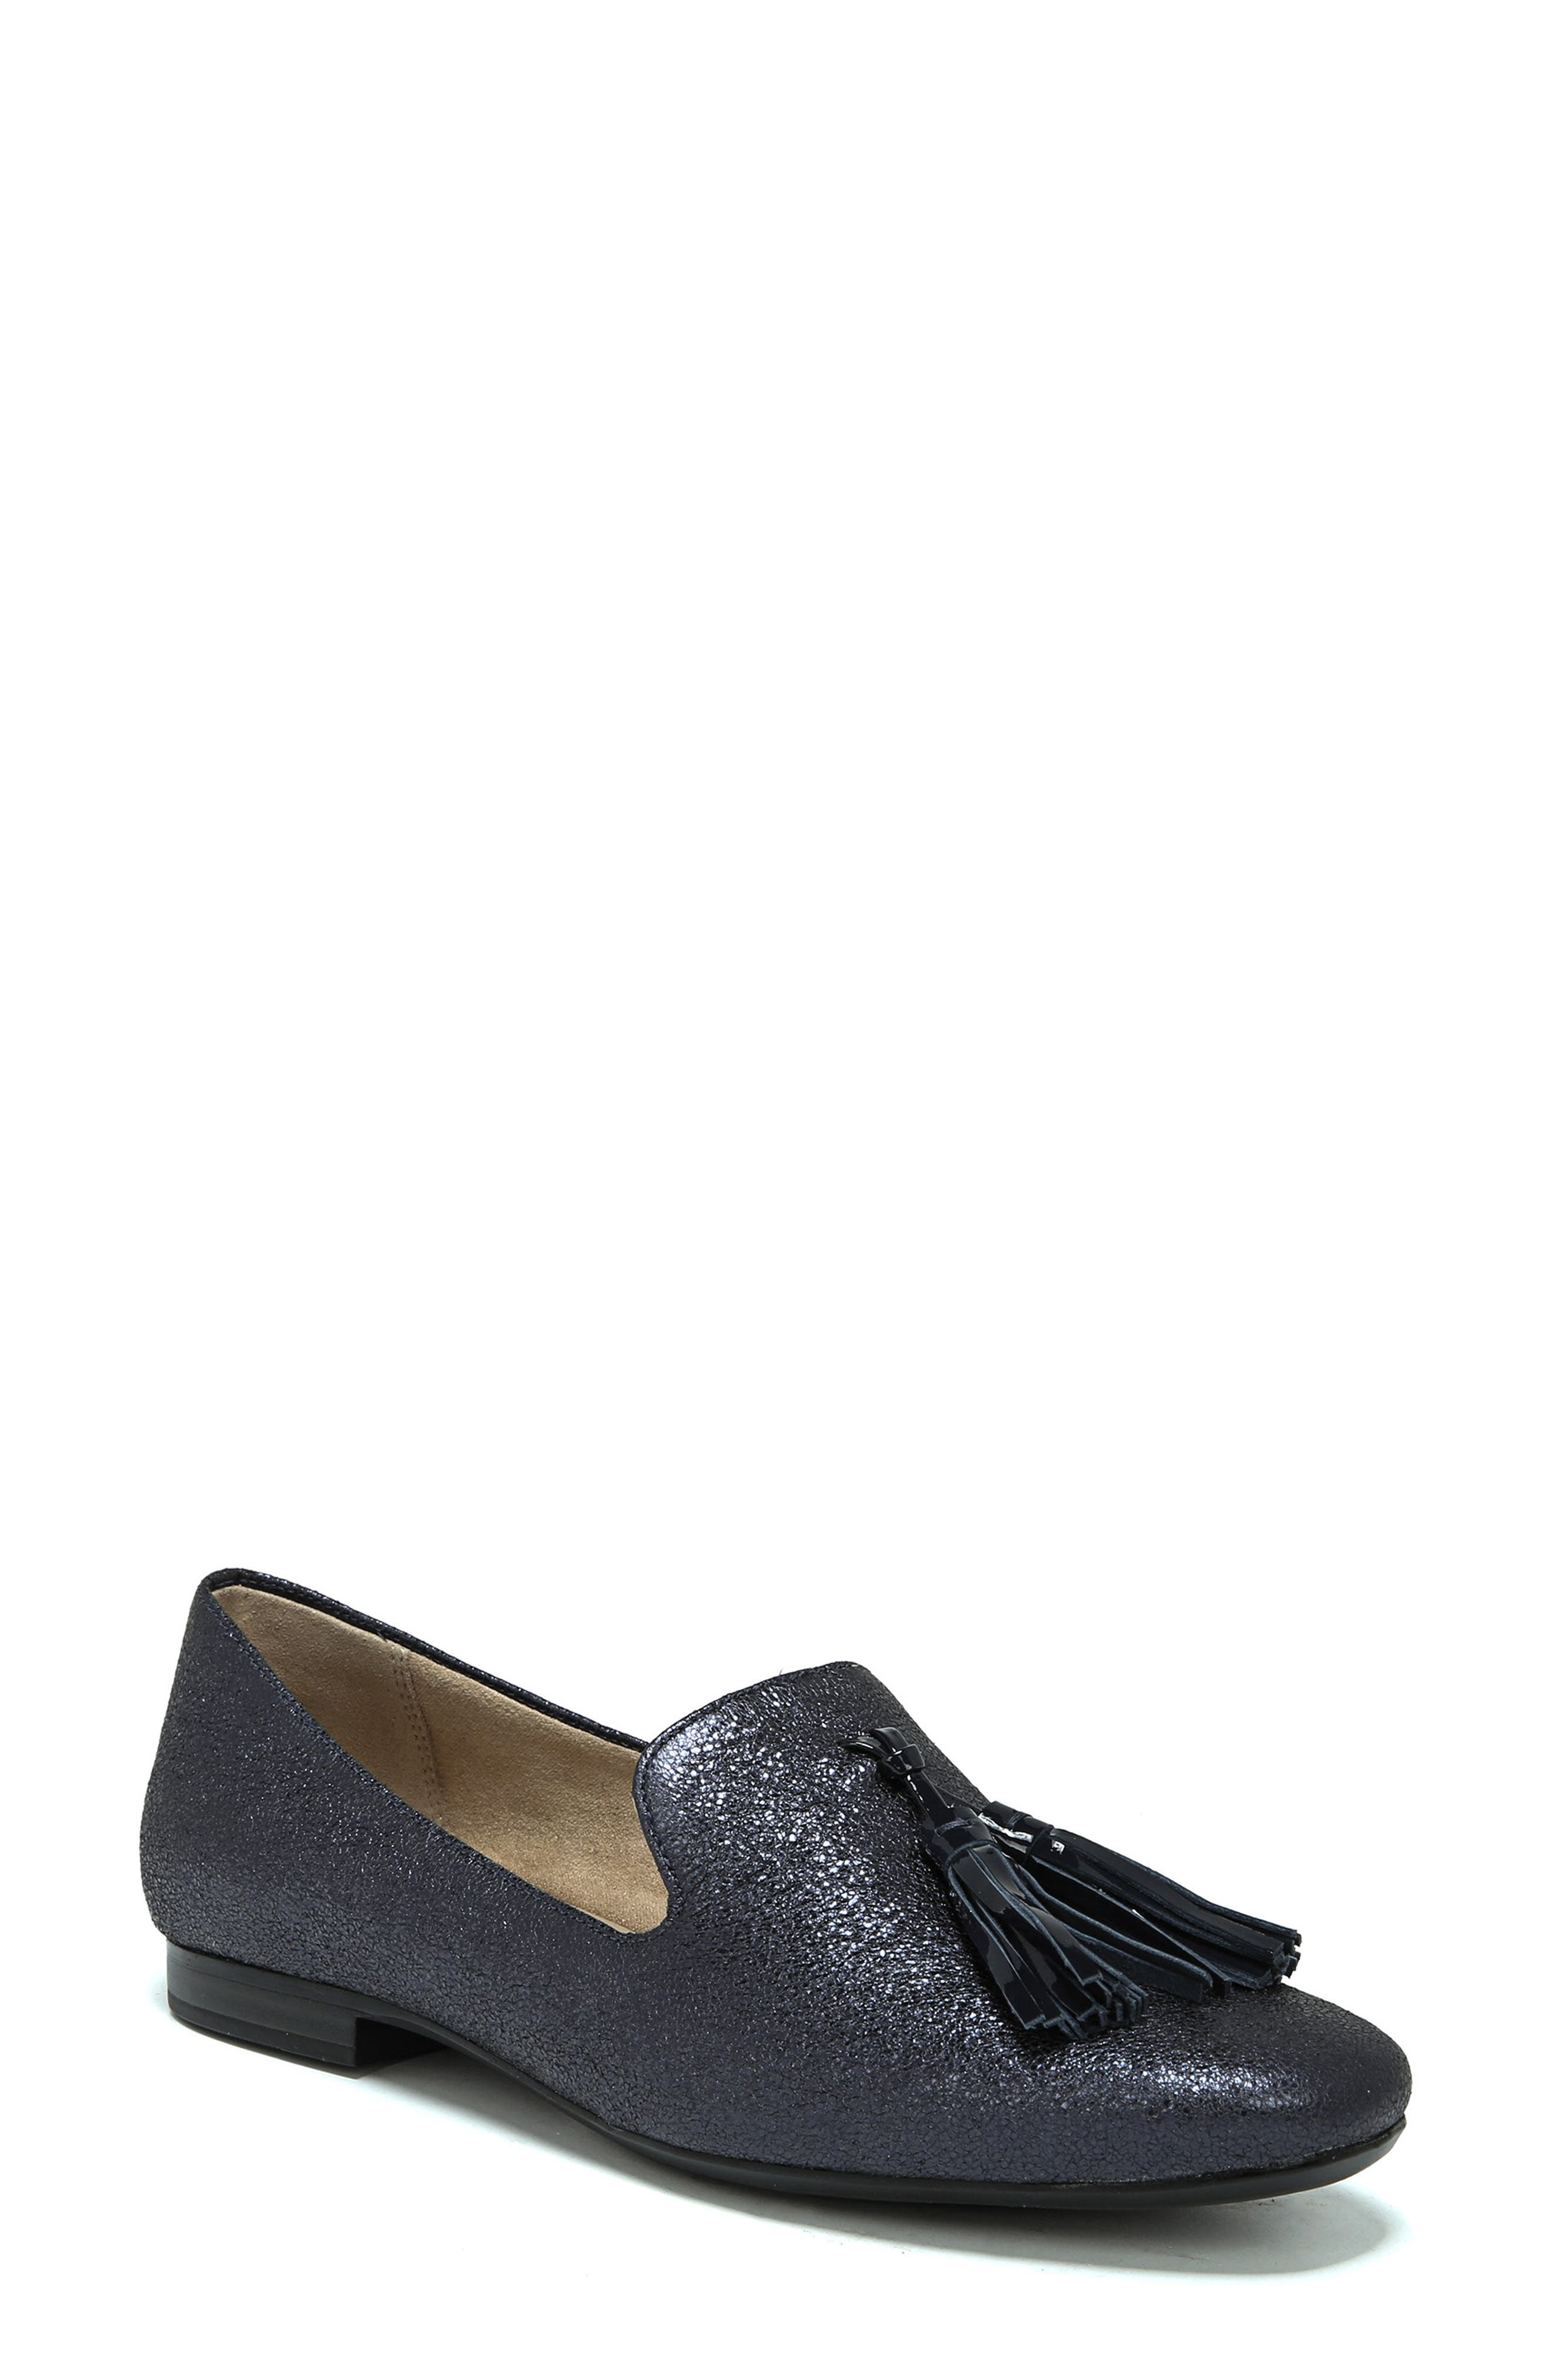 Elly Flat,                         Main,                         color, NAVY METALLIC LEATHER